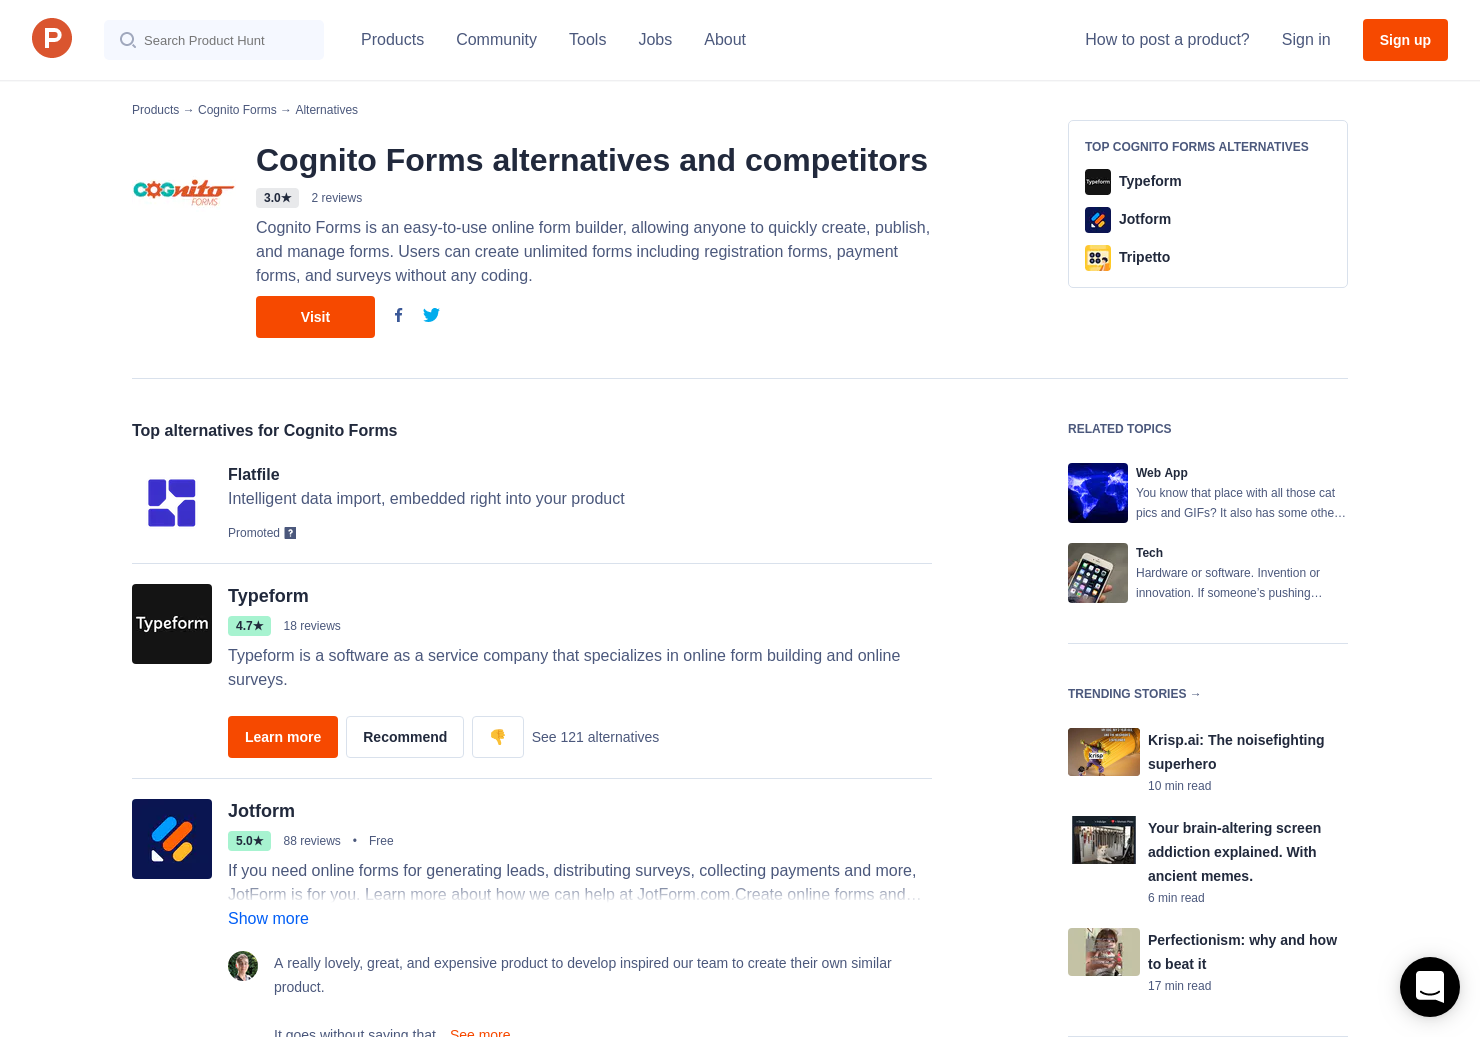 14 Alternatives to Cognito Forms | Product Hunt